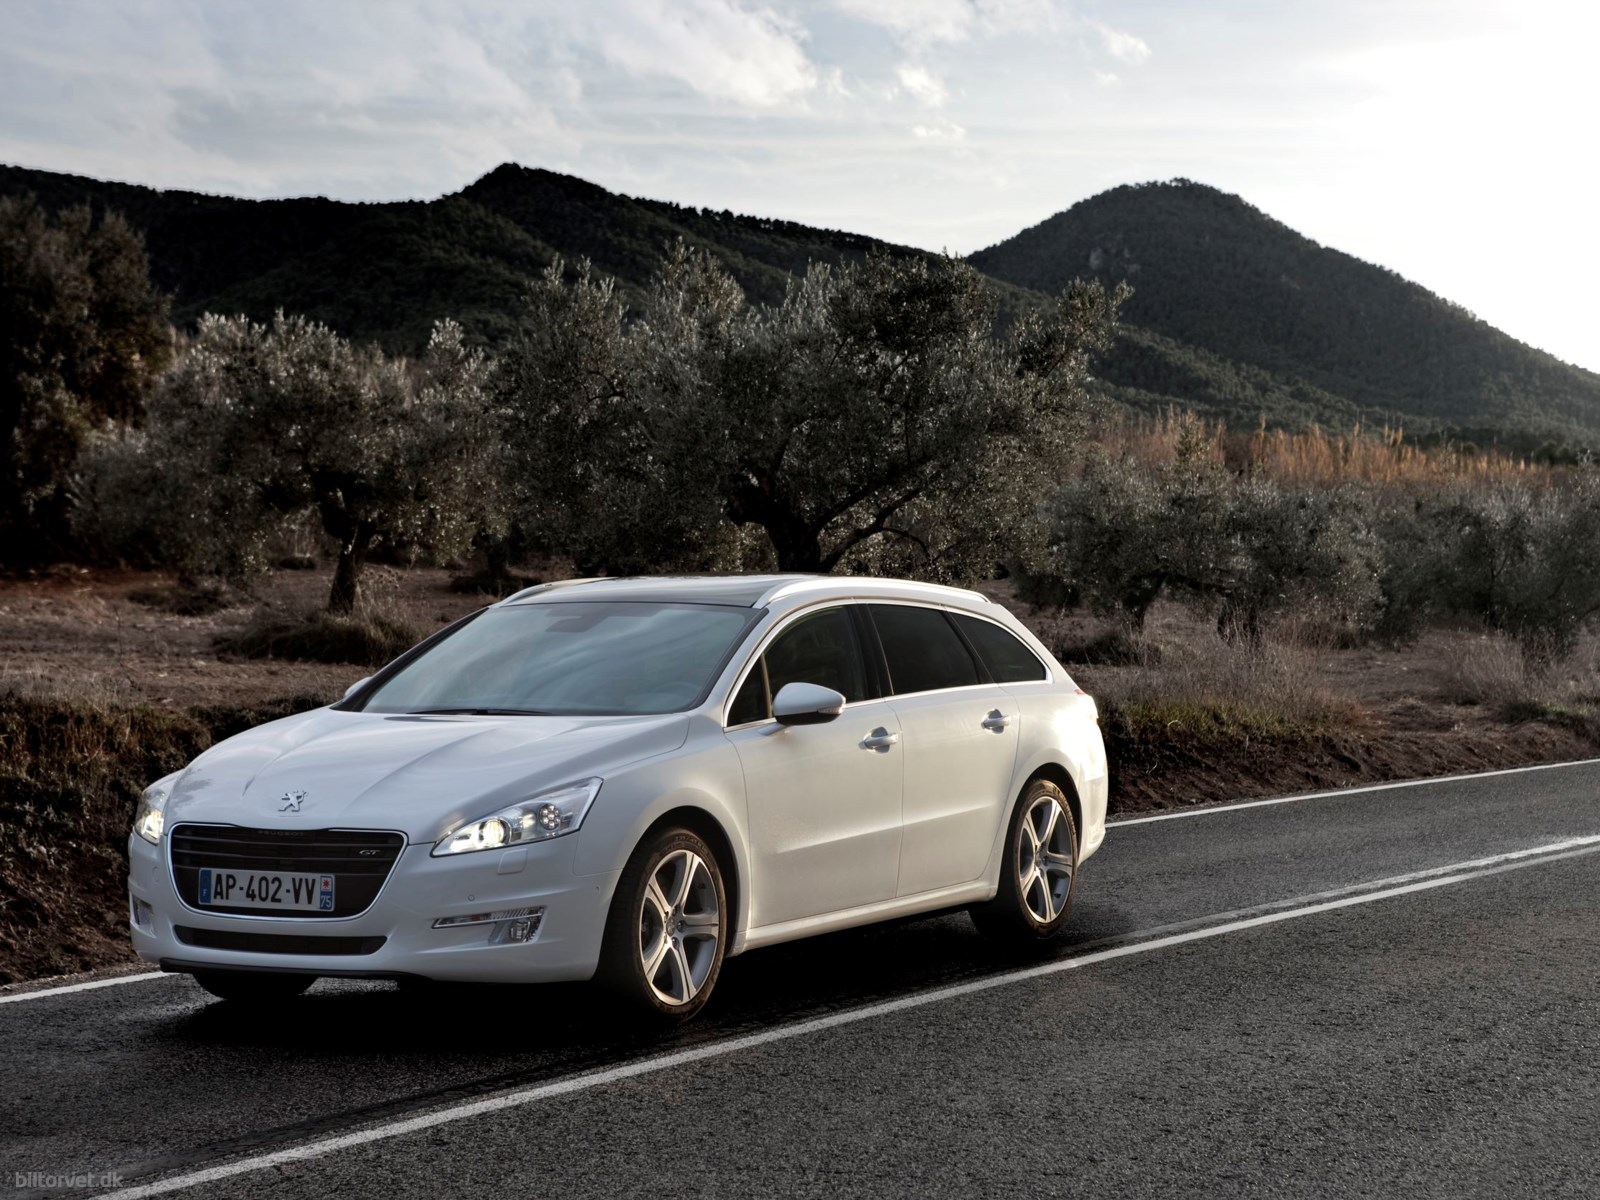 nyhed rets avis bil 2012 peugeot 508 biltorvet. Black Bedroom Furniture Sets. Home Design Ideas